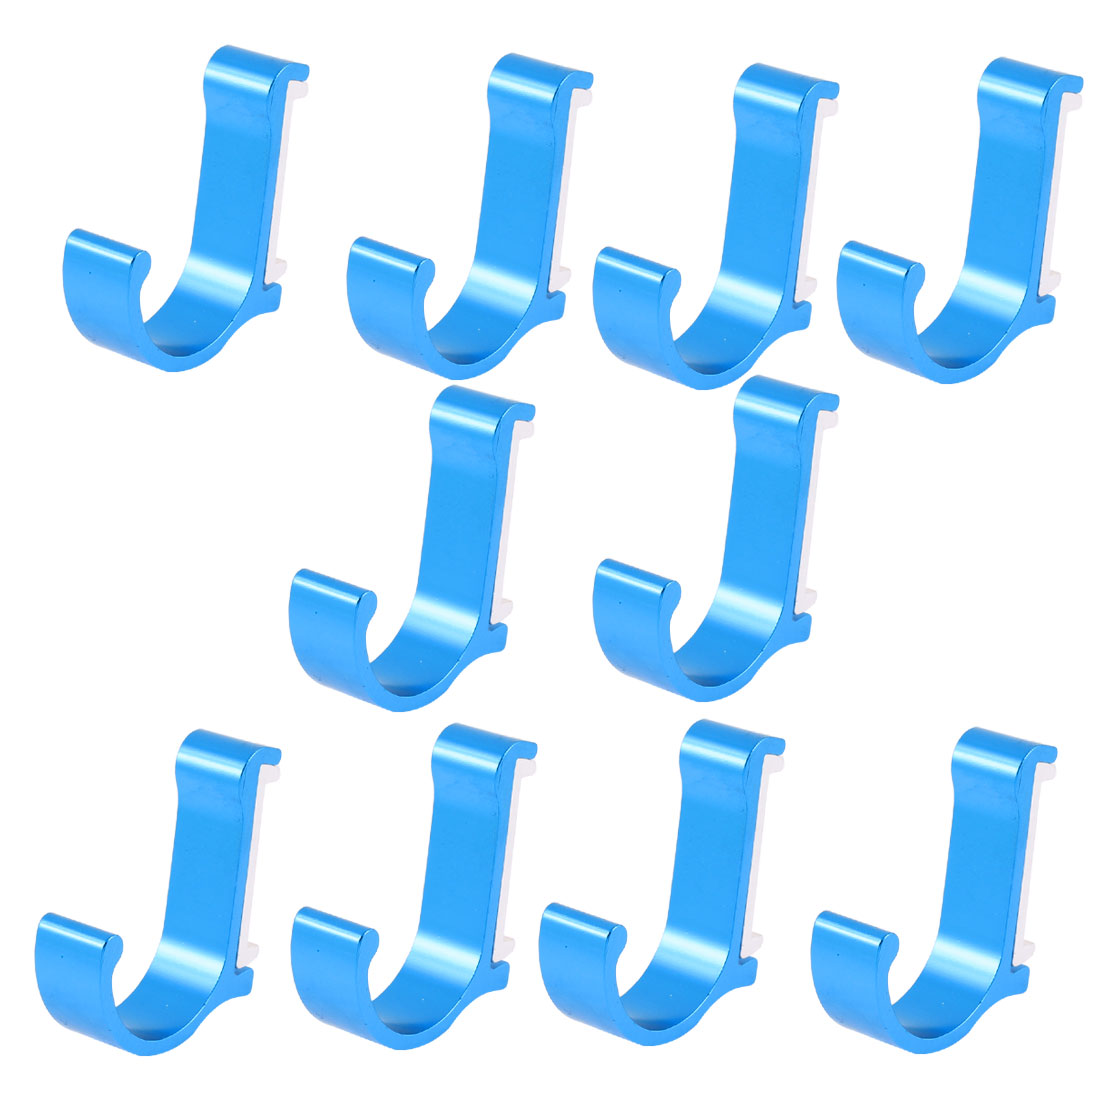 Bedroom Kitchen Clothes Hat Aluminum Wall Hanging Hook Hanger Royal Blue 10pcs